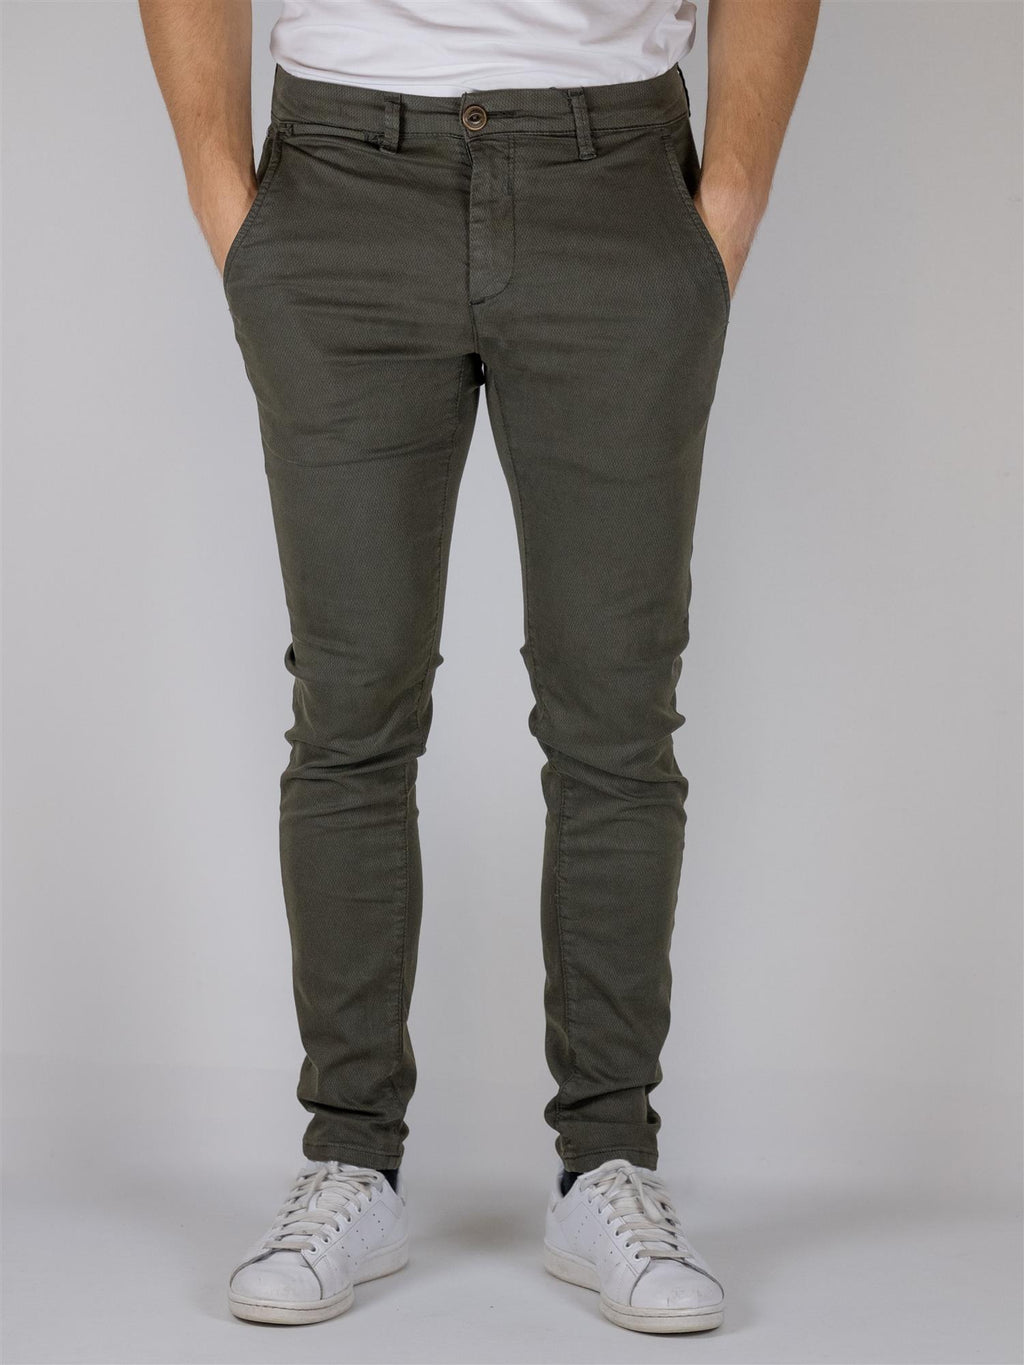 Paul Basic+ Flex Chino K3280 - Army